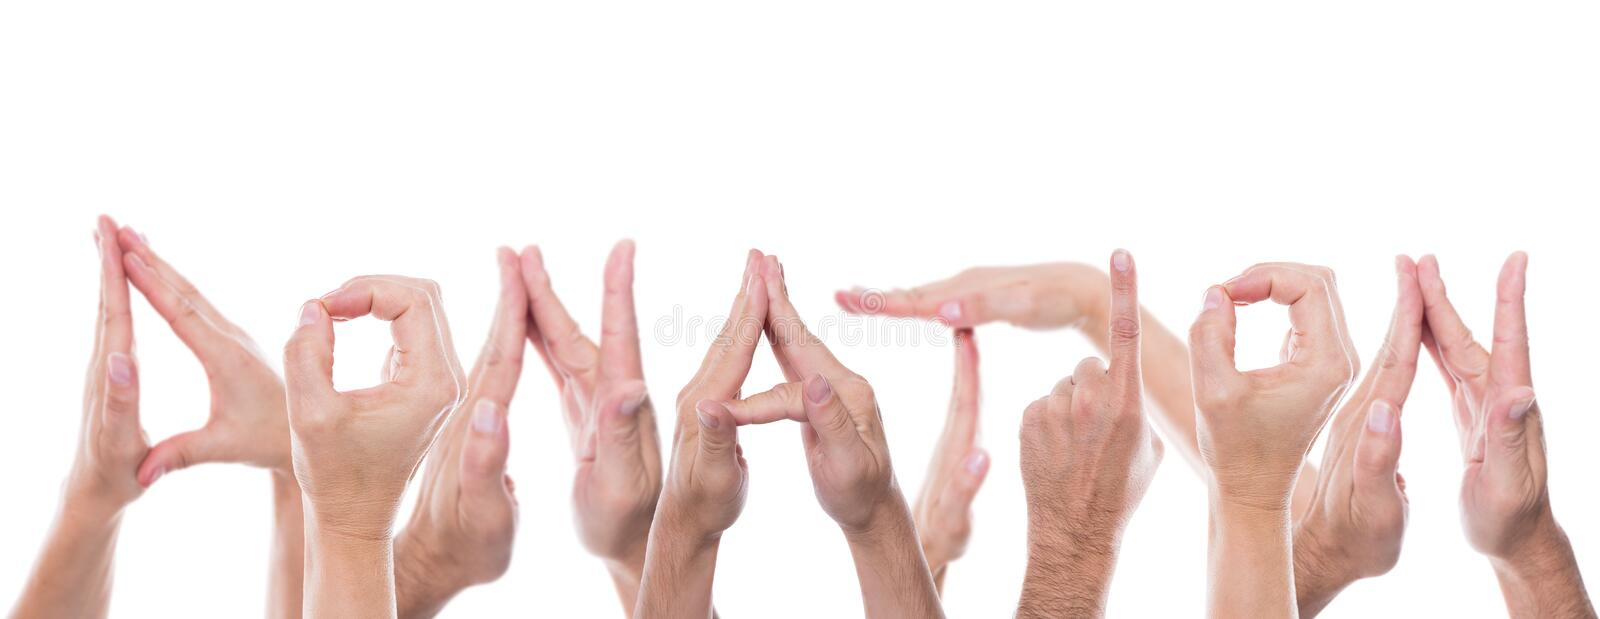 Hands form the word donation royalty free stock image